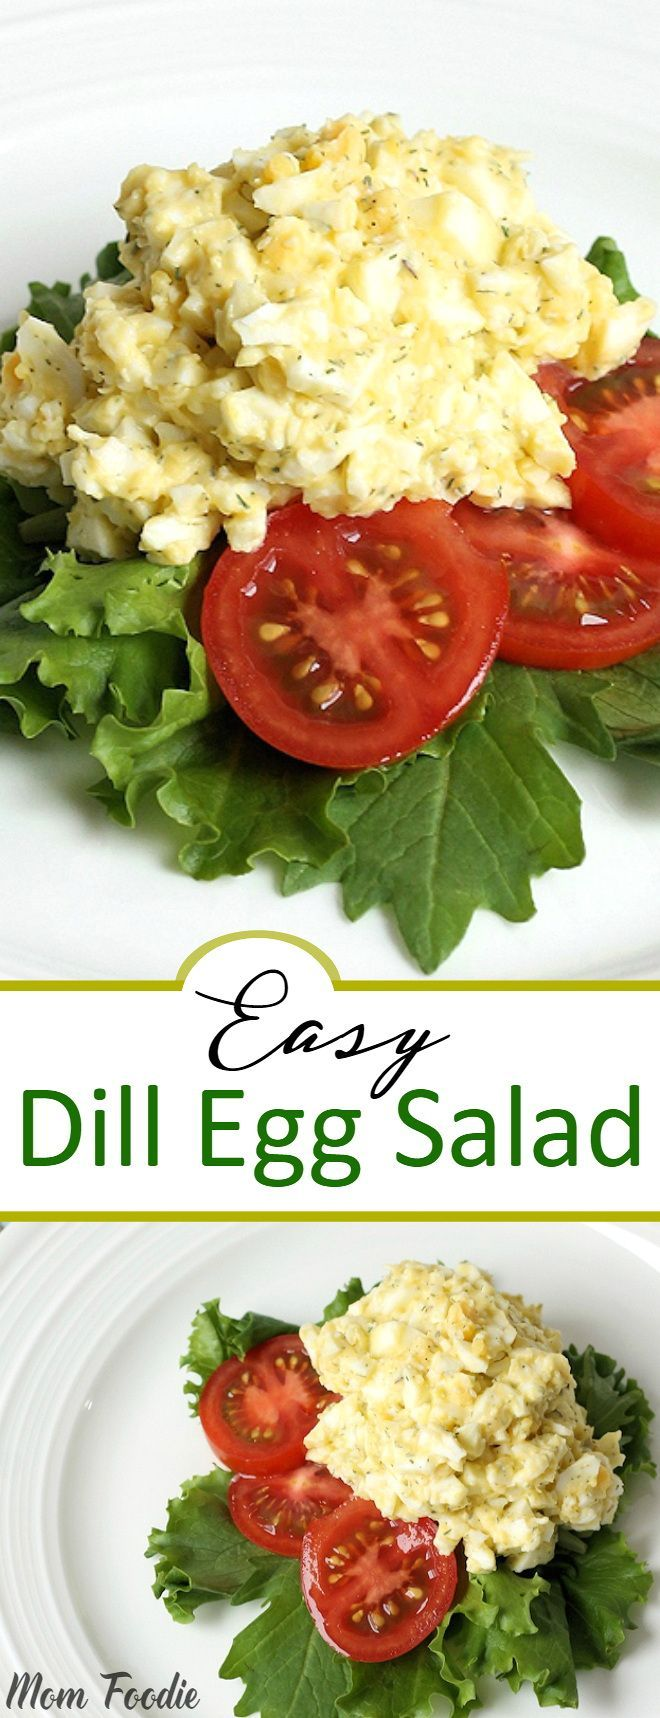 Easy Dill Egg Salad - Inexpensive high protein, low carb recipe.